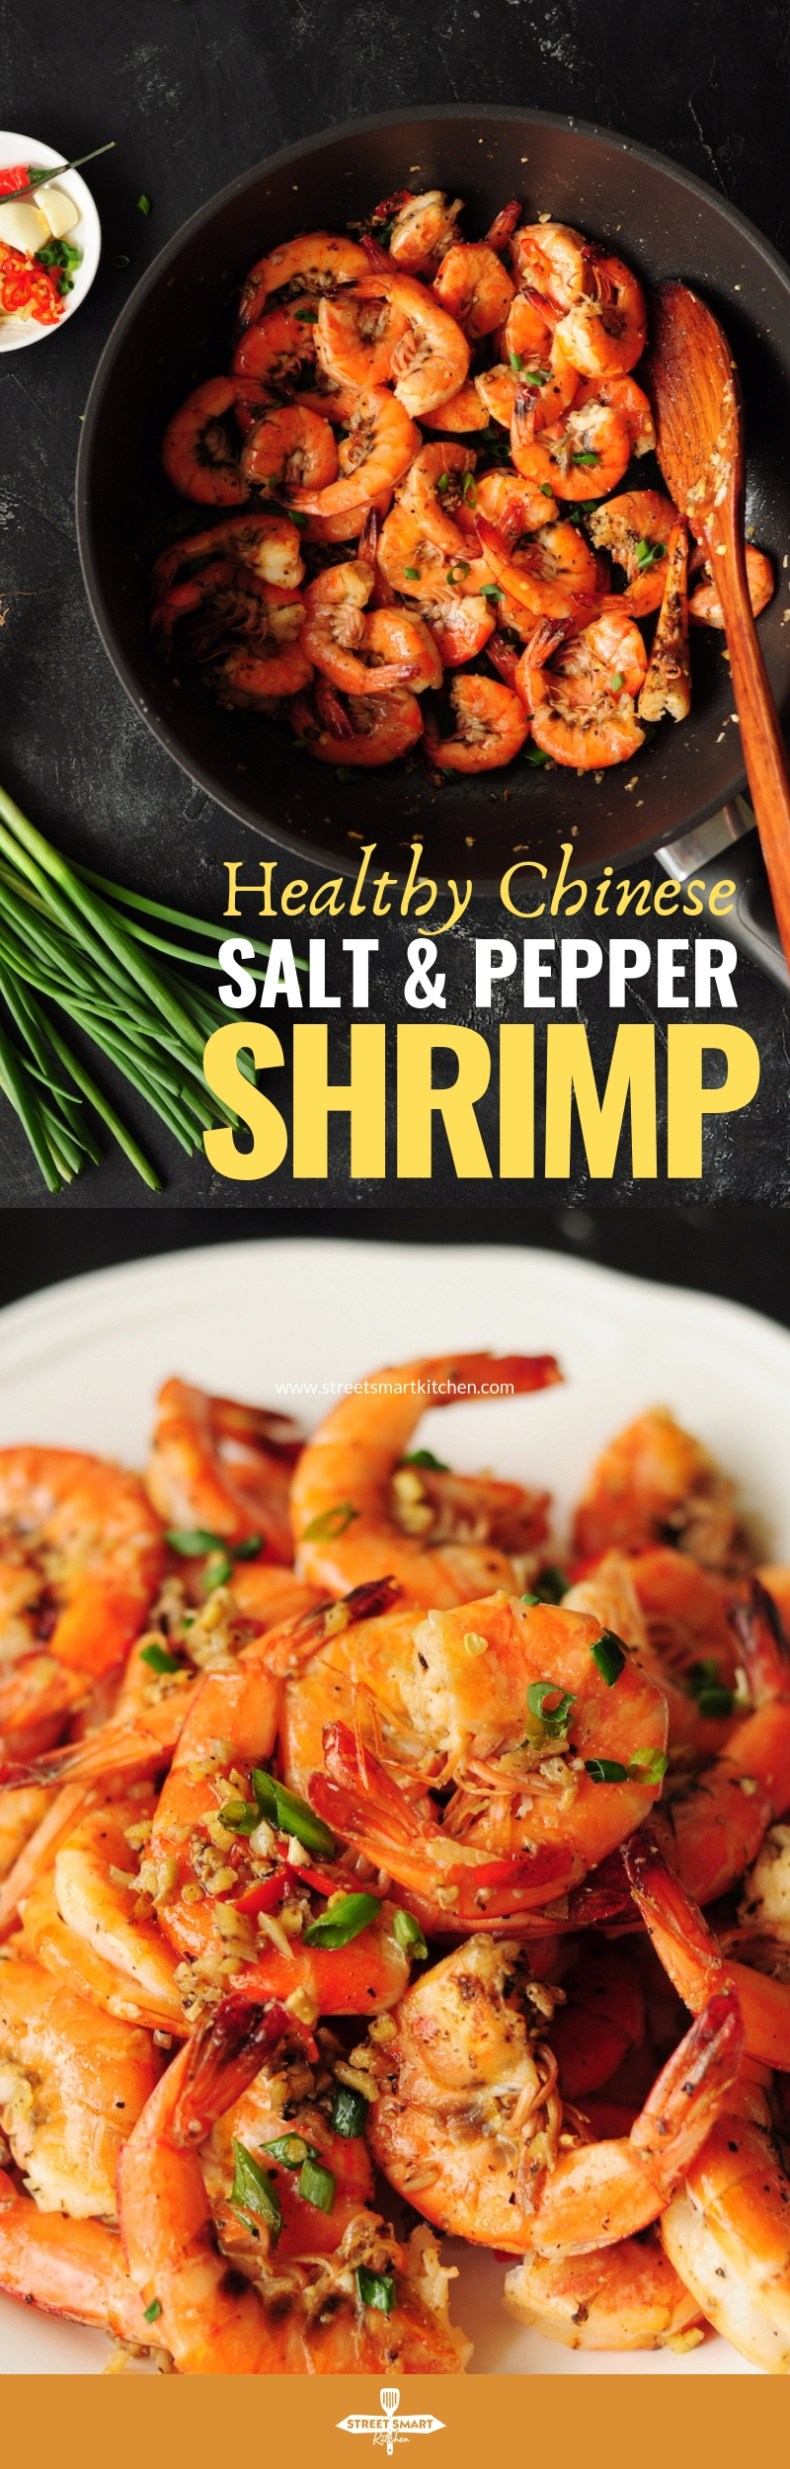 Classic Chinese salt and pepper shrimp with a healthy twist without losing any authentic taste. It's gluten-free and only requires 15 minutes. So quick and yum!